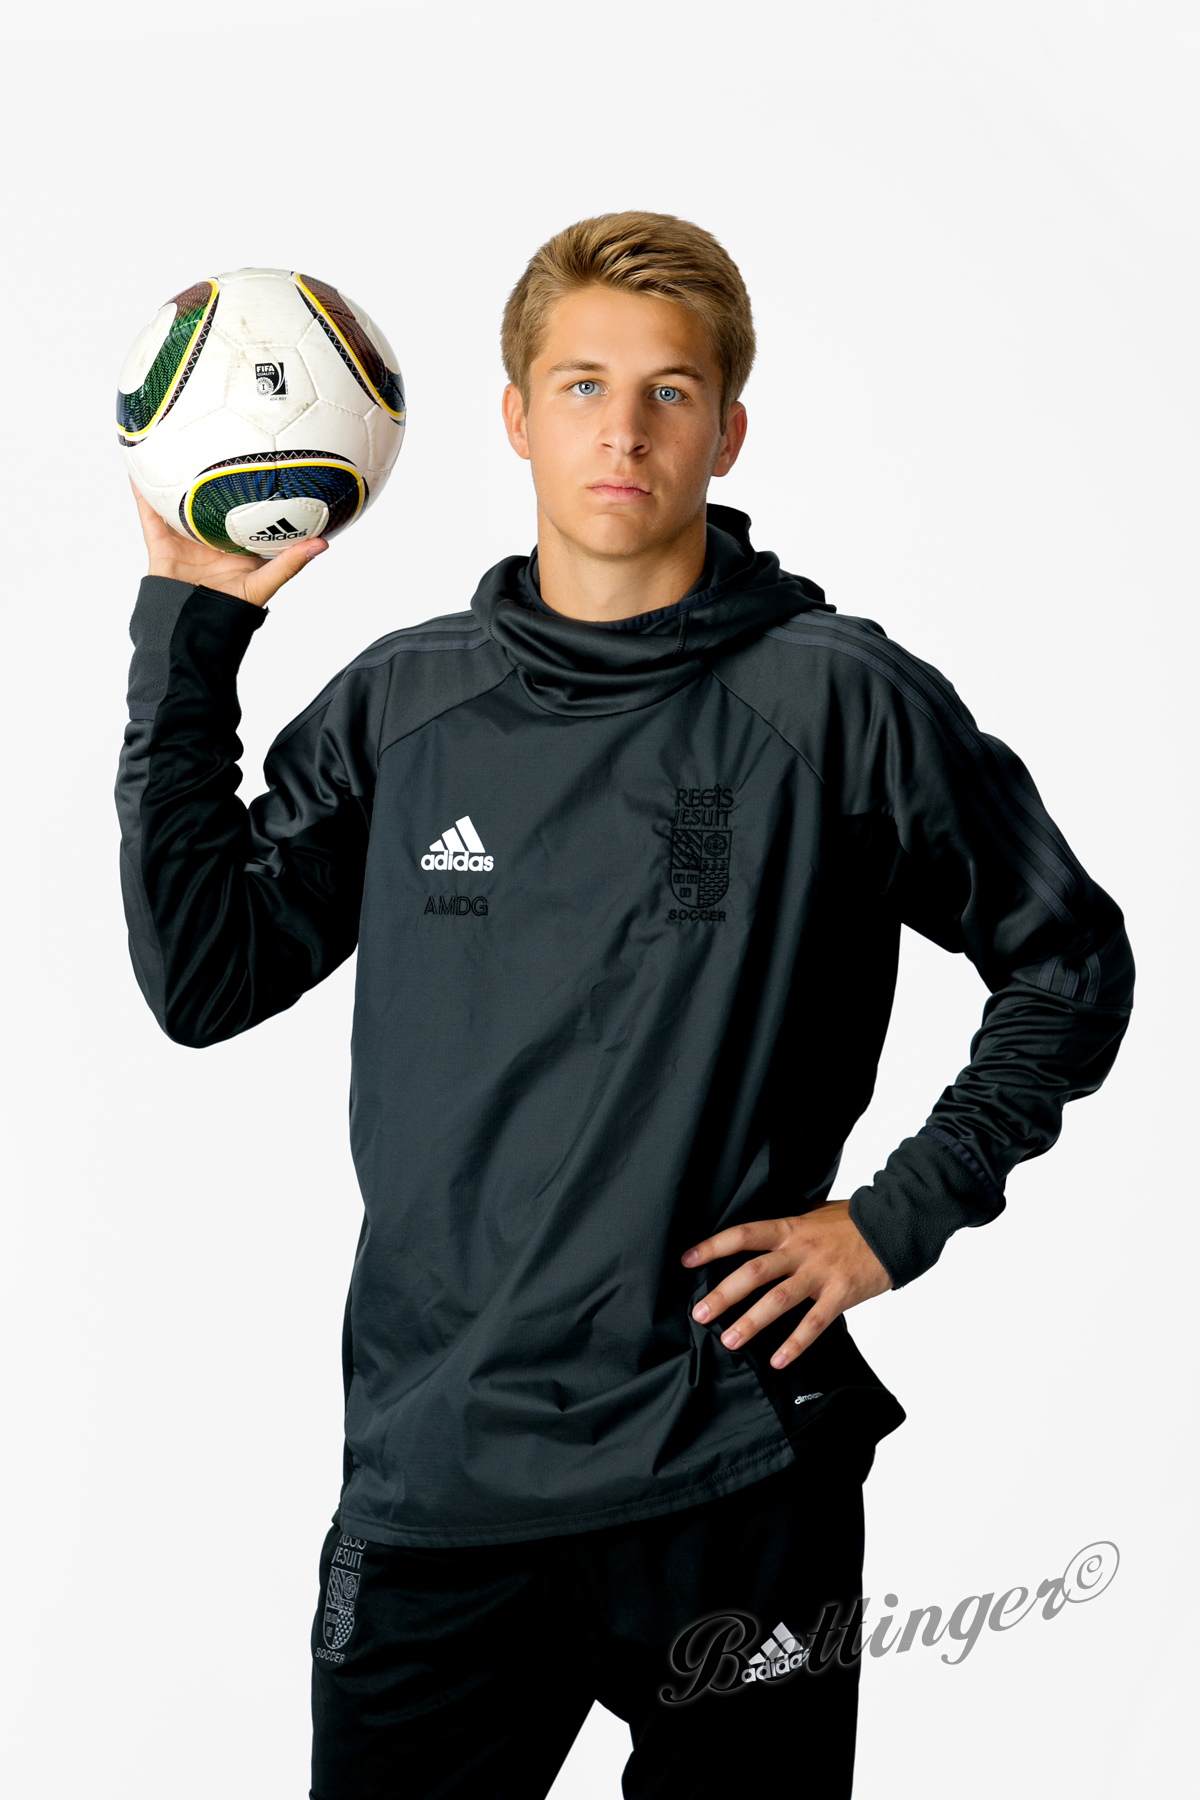 - Cole is a senior at Regis Jesuit and play soccer.